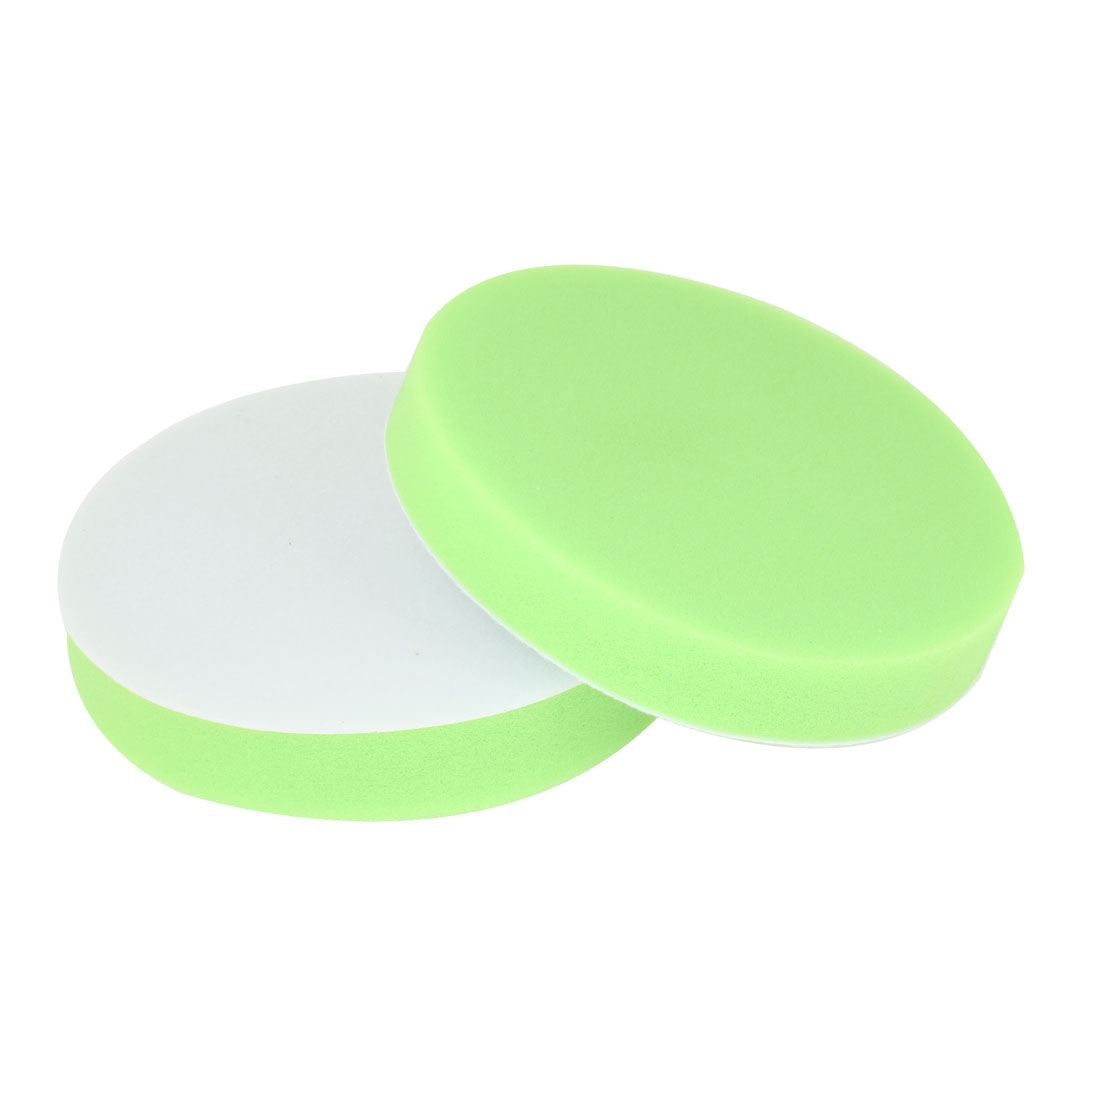 2 Pcs Green Soft Sponge Wax Waxing Polishing Wheel 14.8cm Dia for Auto